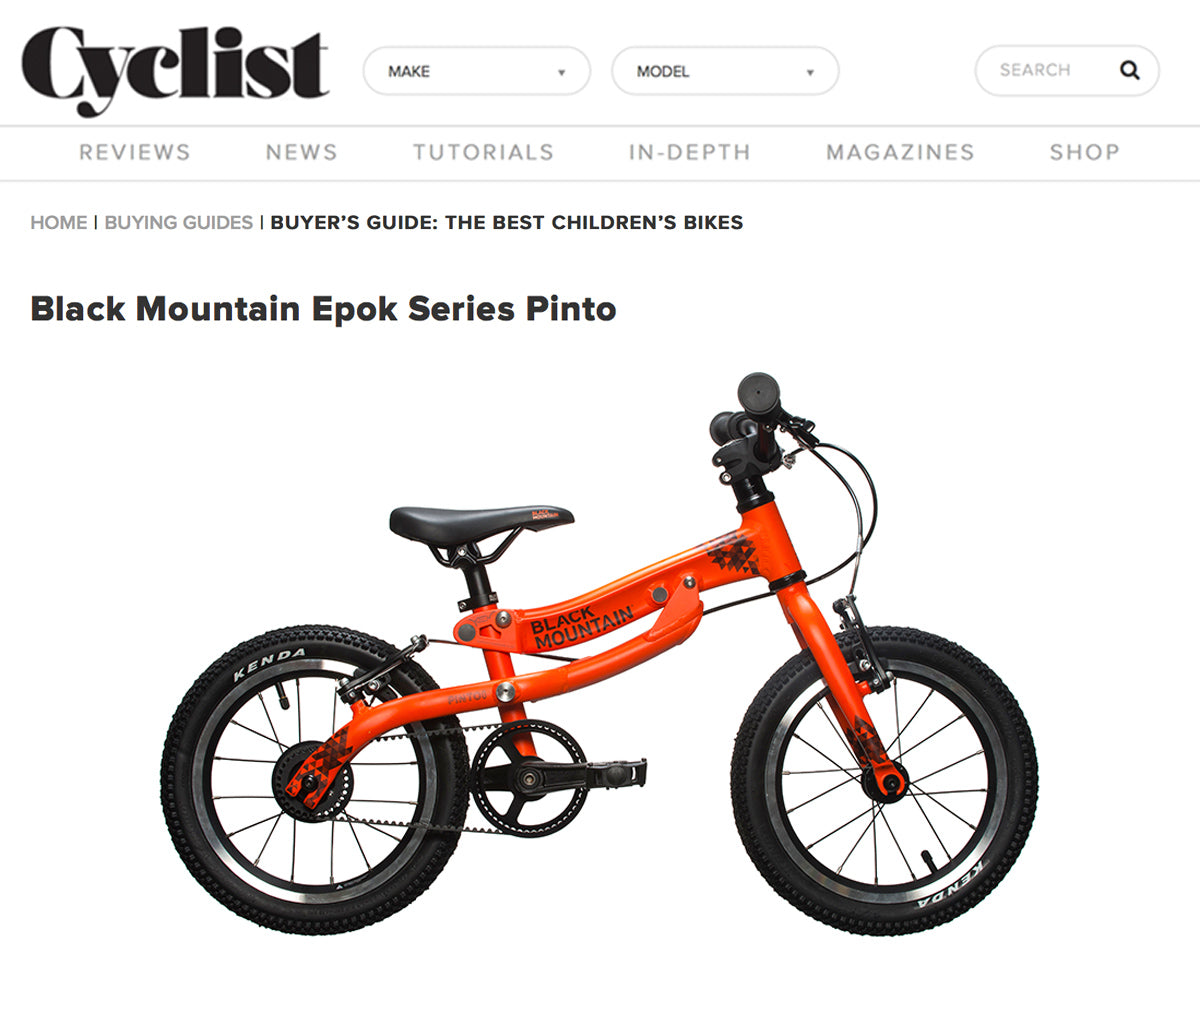 Image of the PINTO bike on Cyclist website